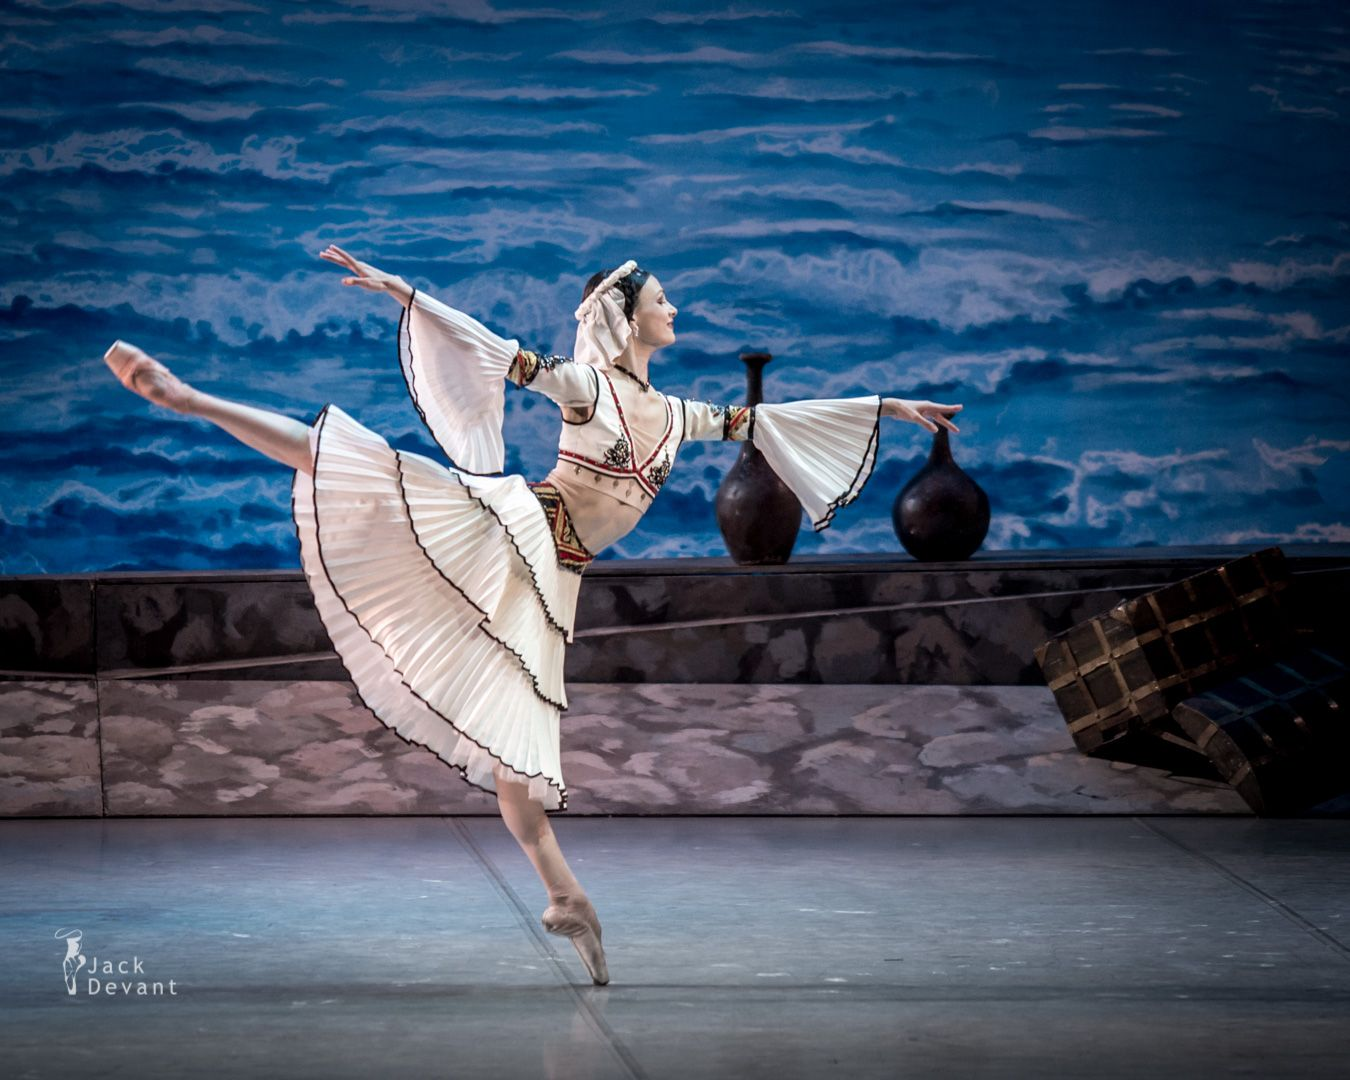 """Kristina Shapran as Medora in """"Le Corsaire"""" / Shot on 5.6.2014 at Mikhailovsky Theatre / Photo © Jack Devant / Kristina Shapran is graduated from the Vaganova State Academy of Russian Ballet in 2011. Soloist of the Stanislavsky Ballet Company since 2011, principal with Mikhailovsky since 2014."""